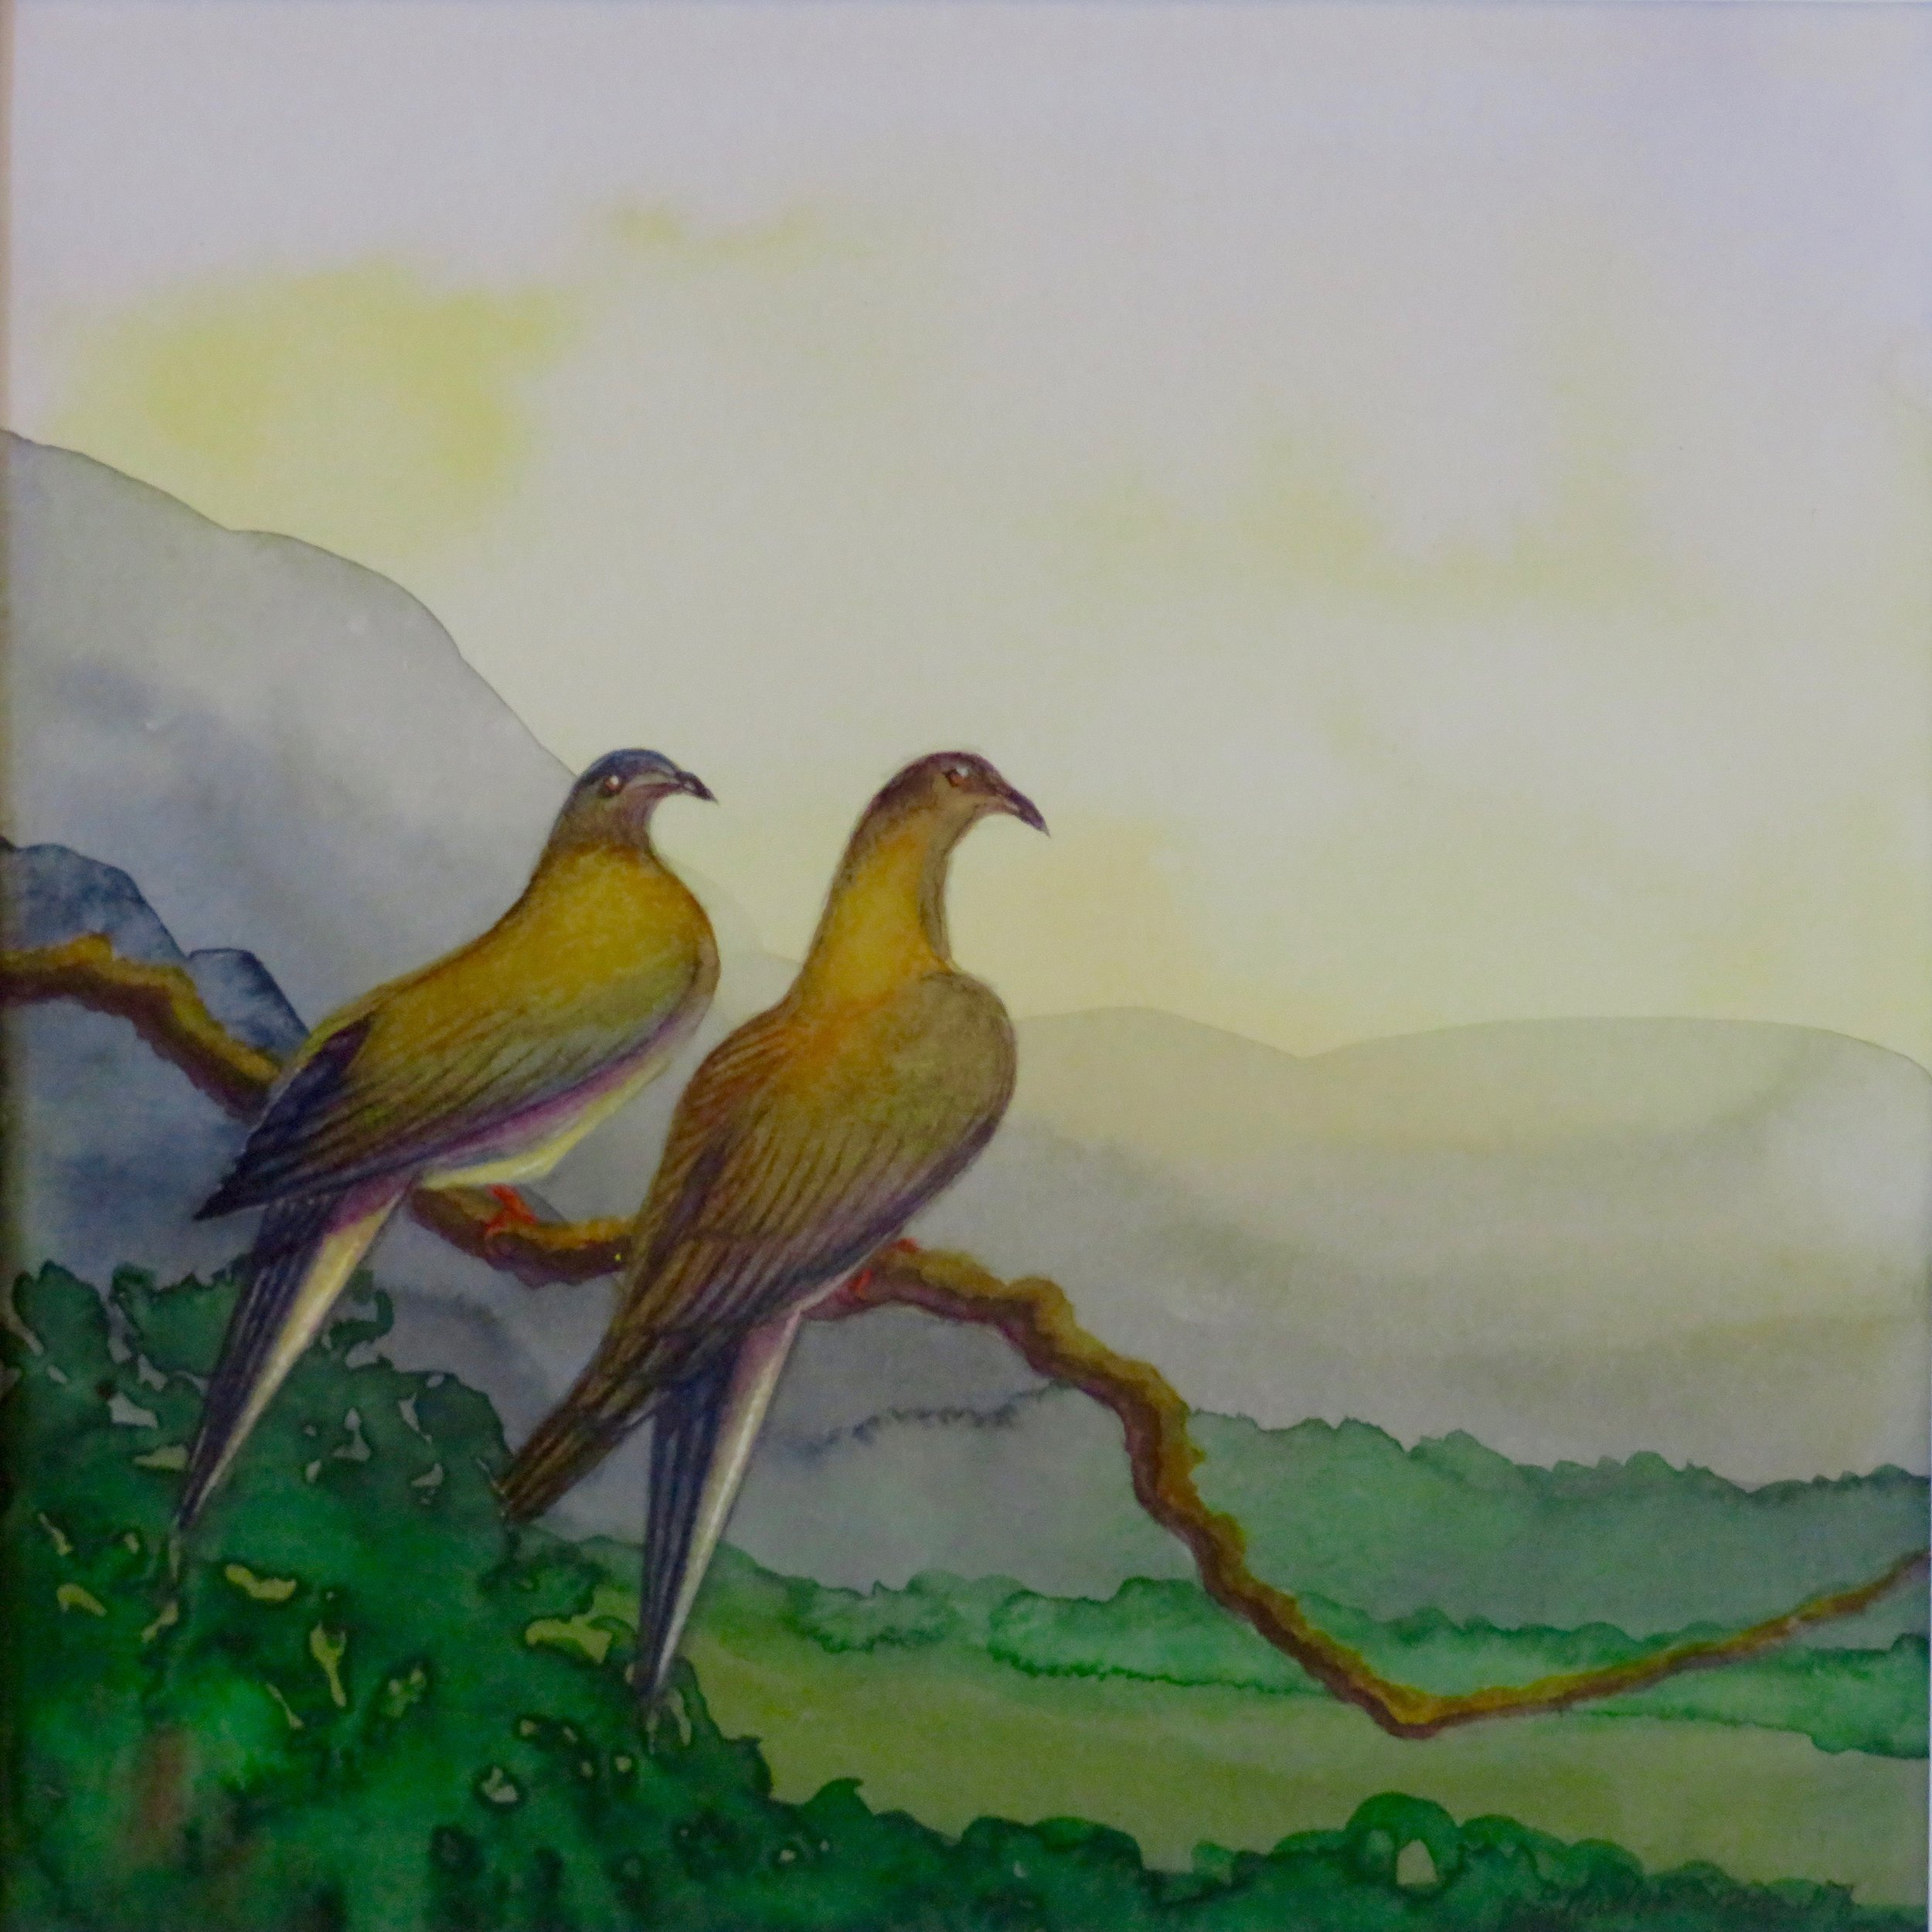 The Passenger Pigeons, Extinct